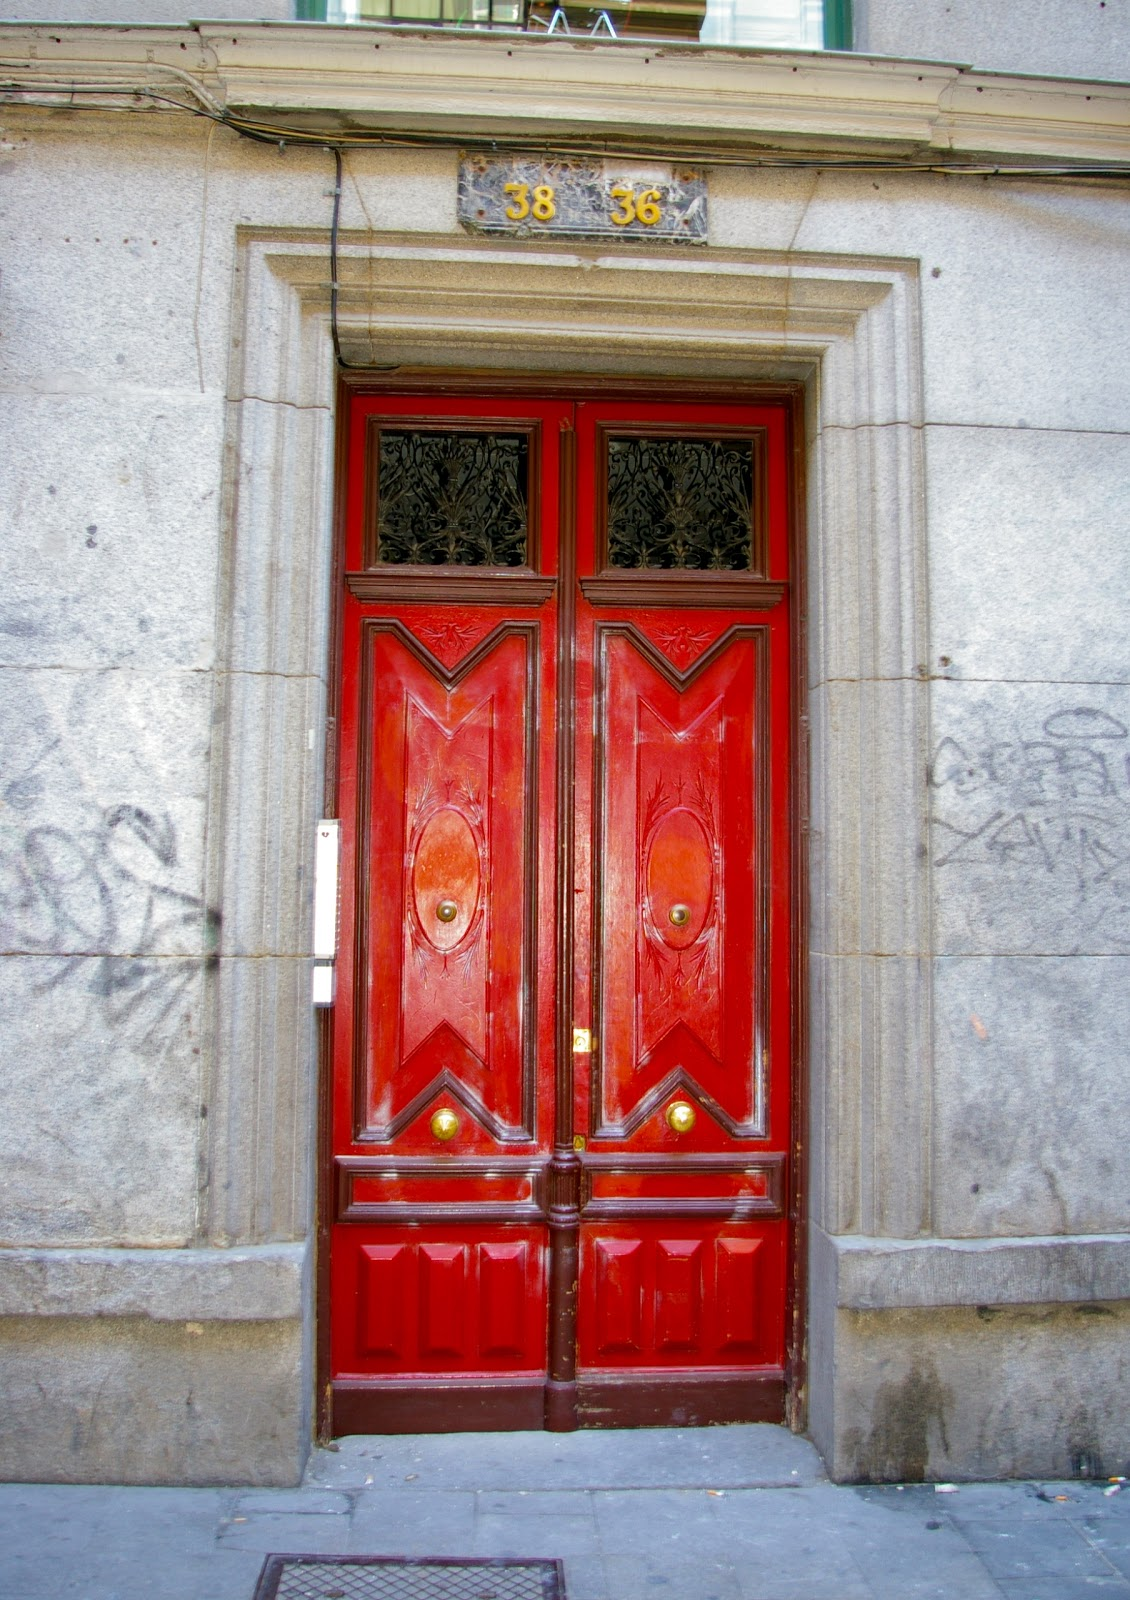 1600 #B41D17  Was The Abundance Of Beautiful Colorful And Ornate Wooden Doors image Beautiful Wooden Doors 46731130